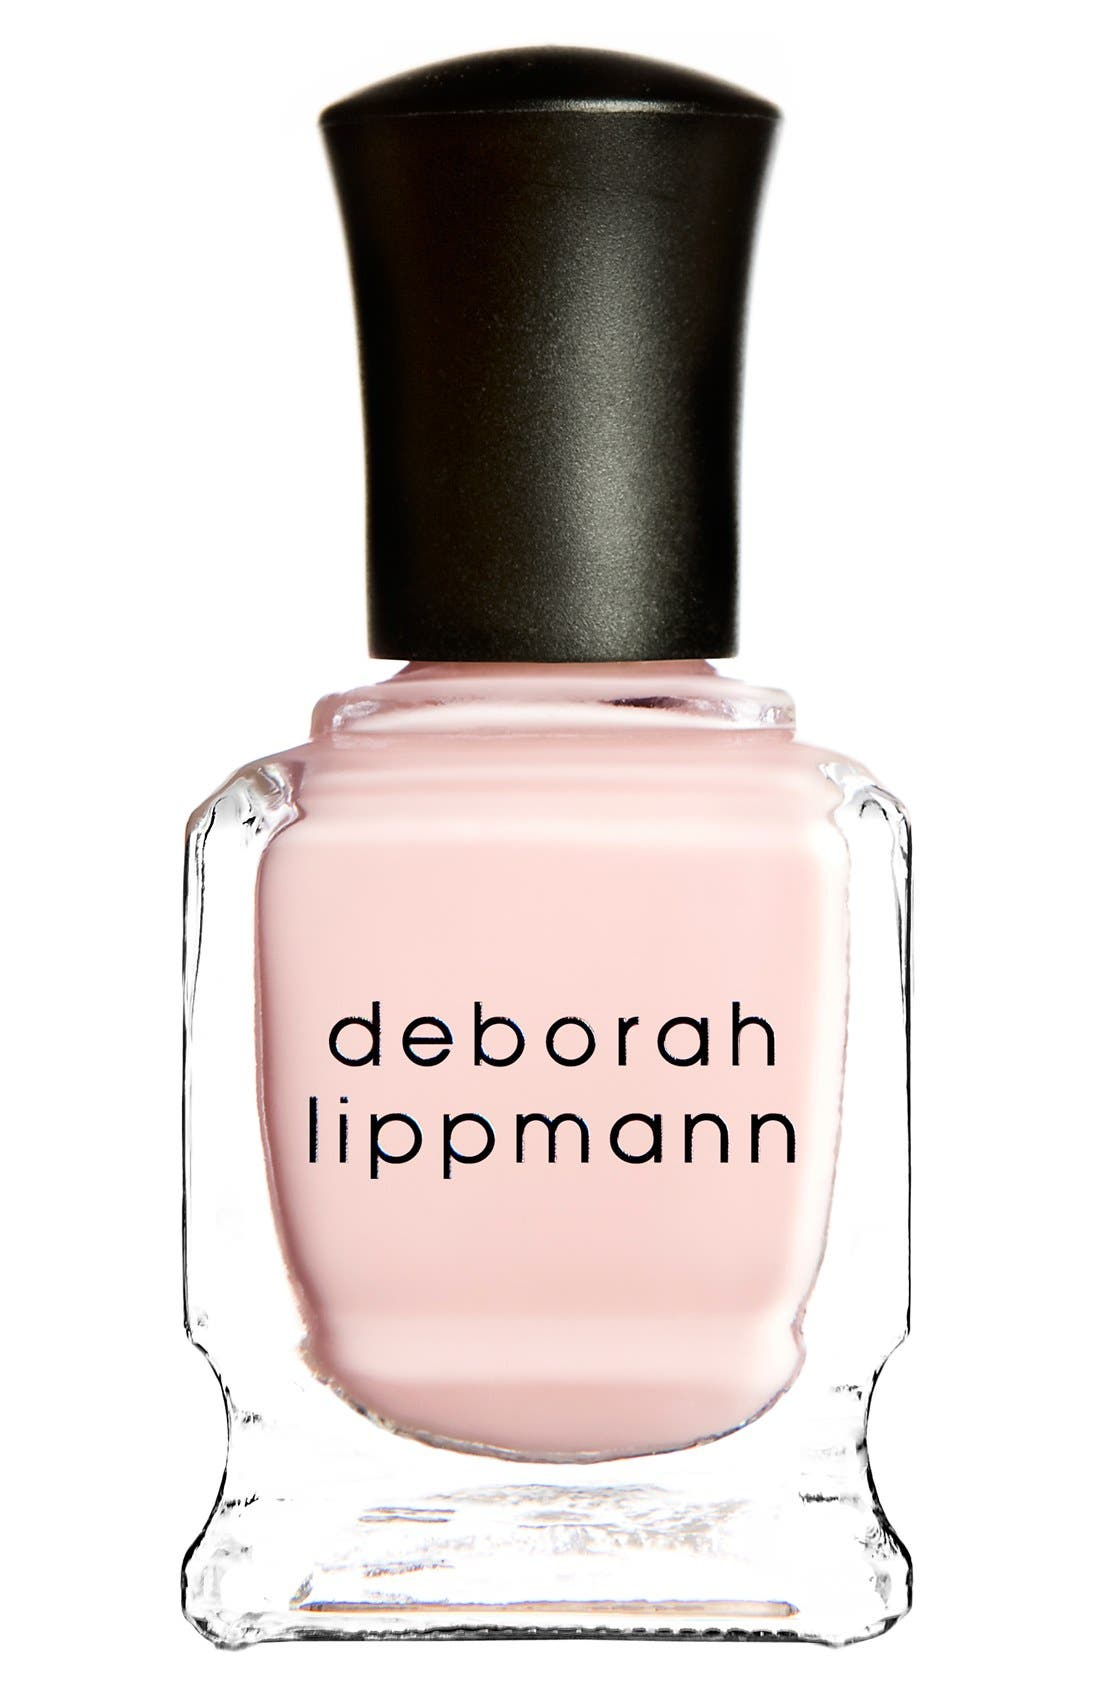 Deborah Lippmann Nail Color (Nordstrom Exclusive)